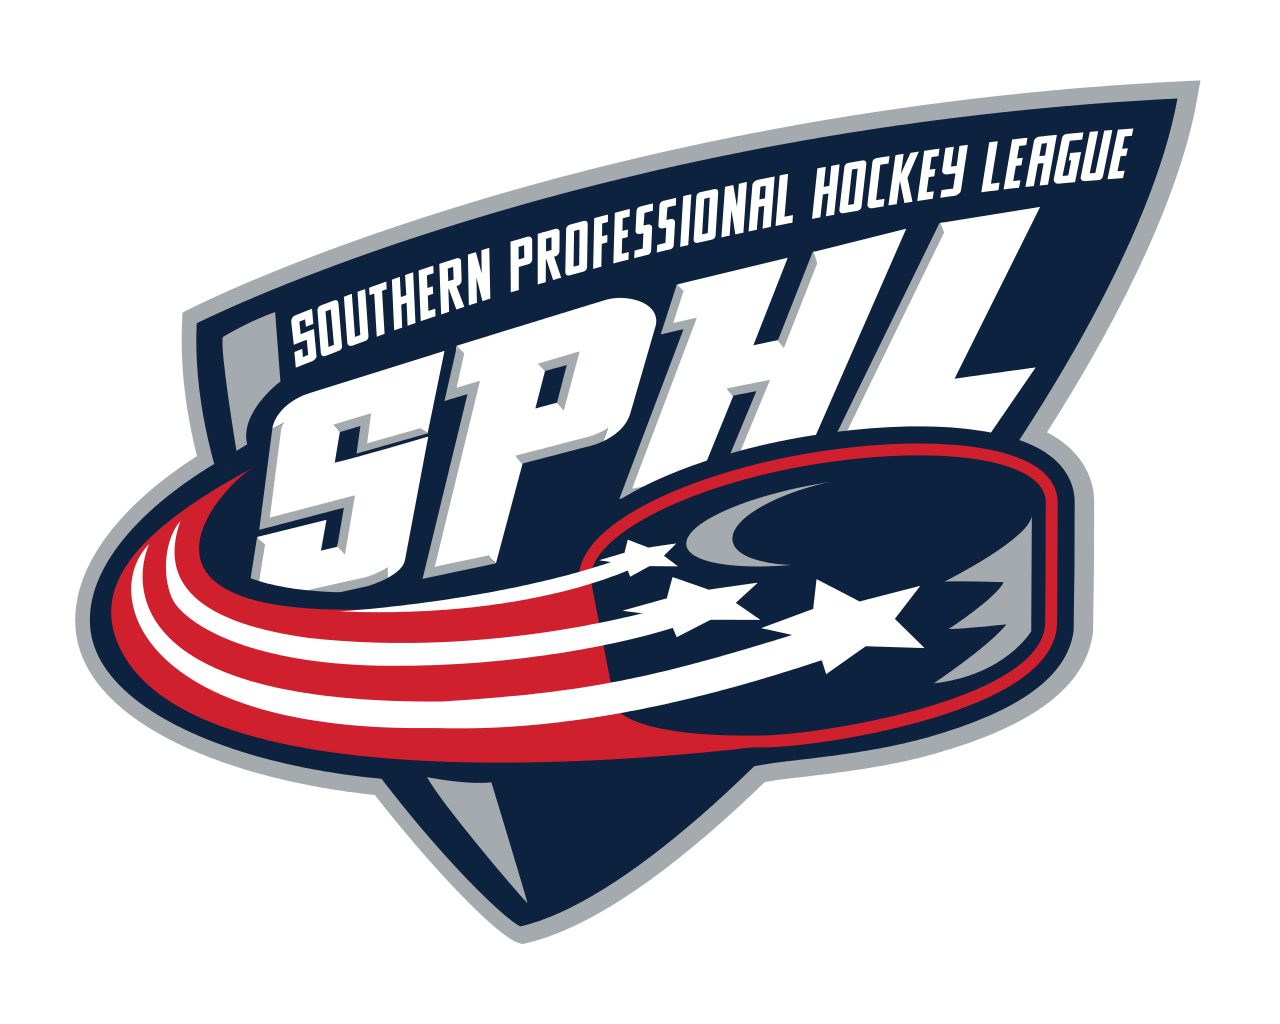 Southern_Professional_Hockey_League_logo.svg